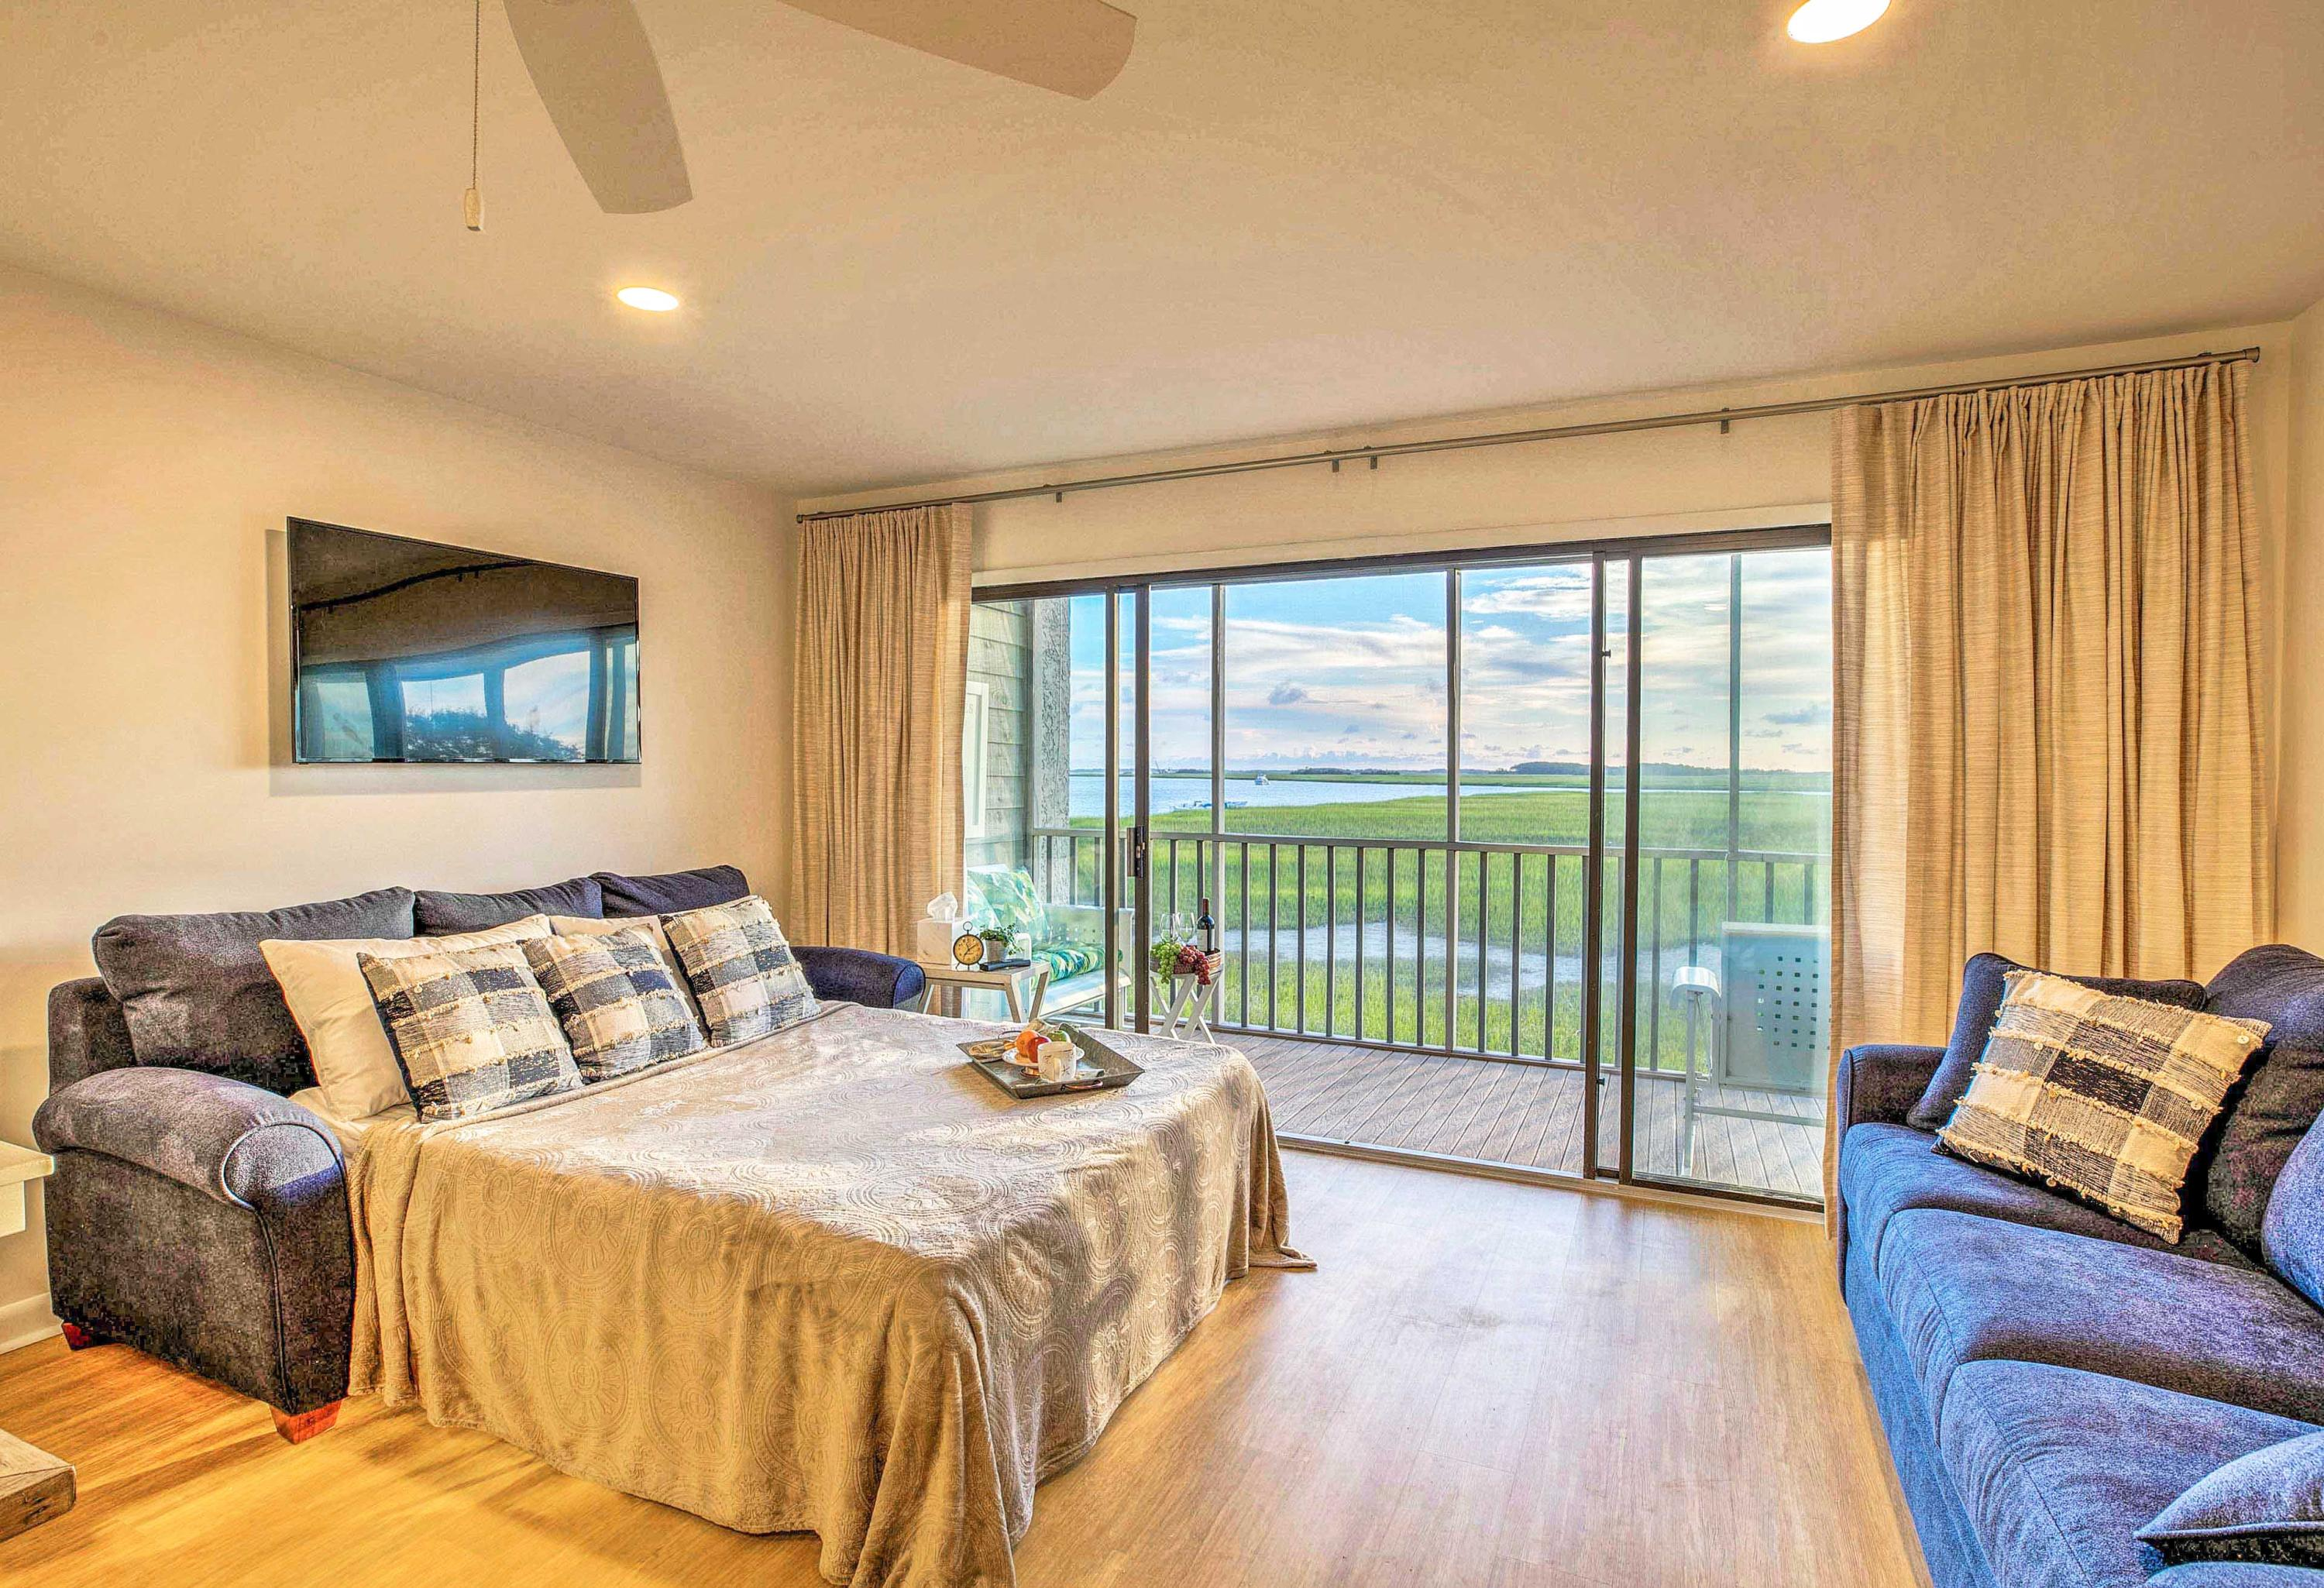 Mariners Cay Homes For Sale - 93 Mariners Cay, Folly Beach, SC - 28